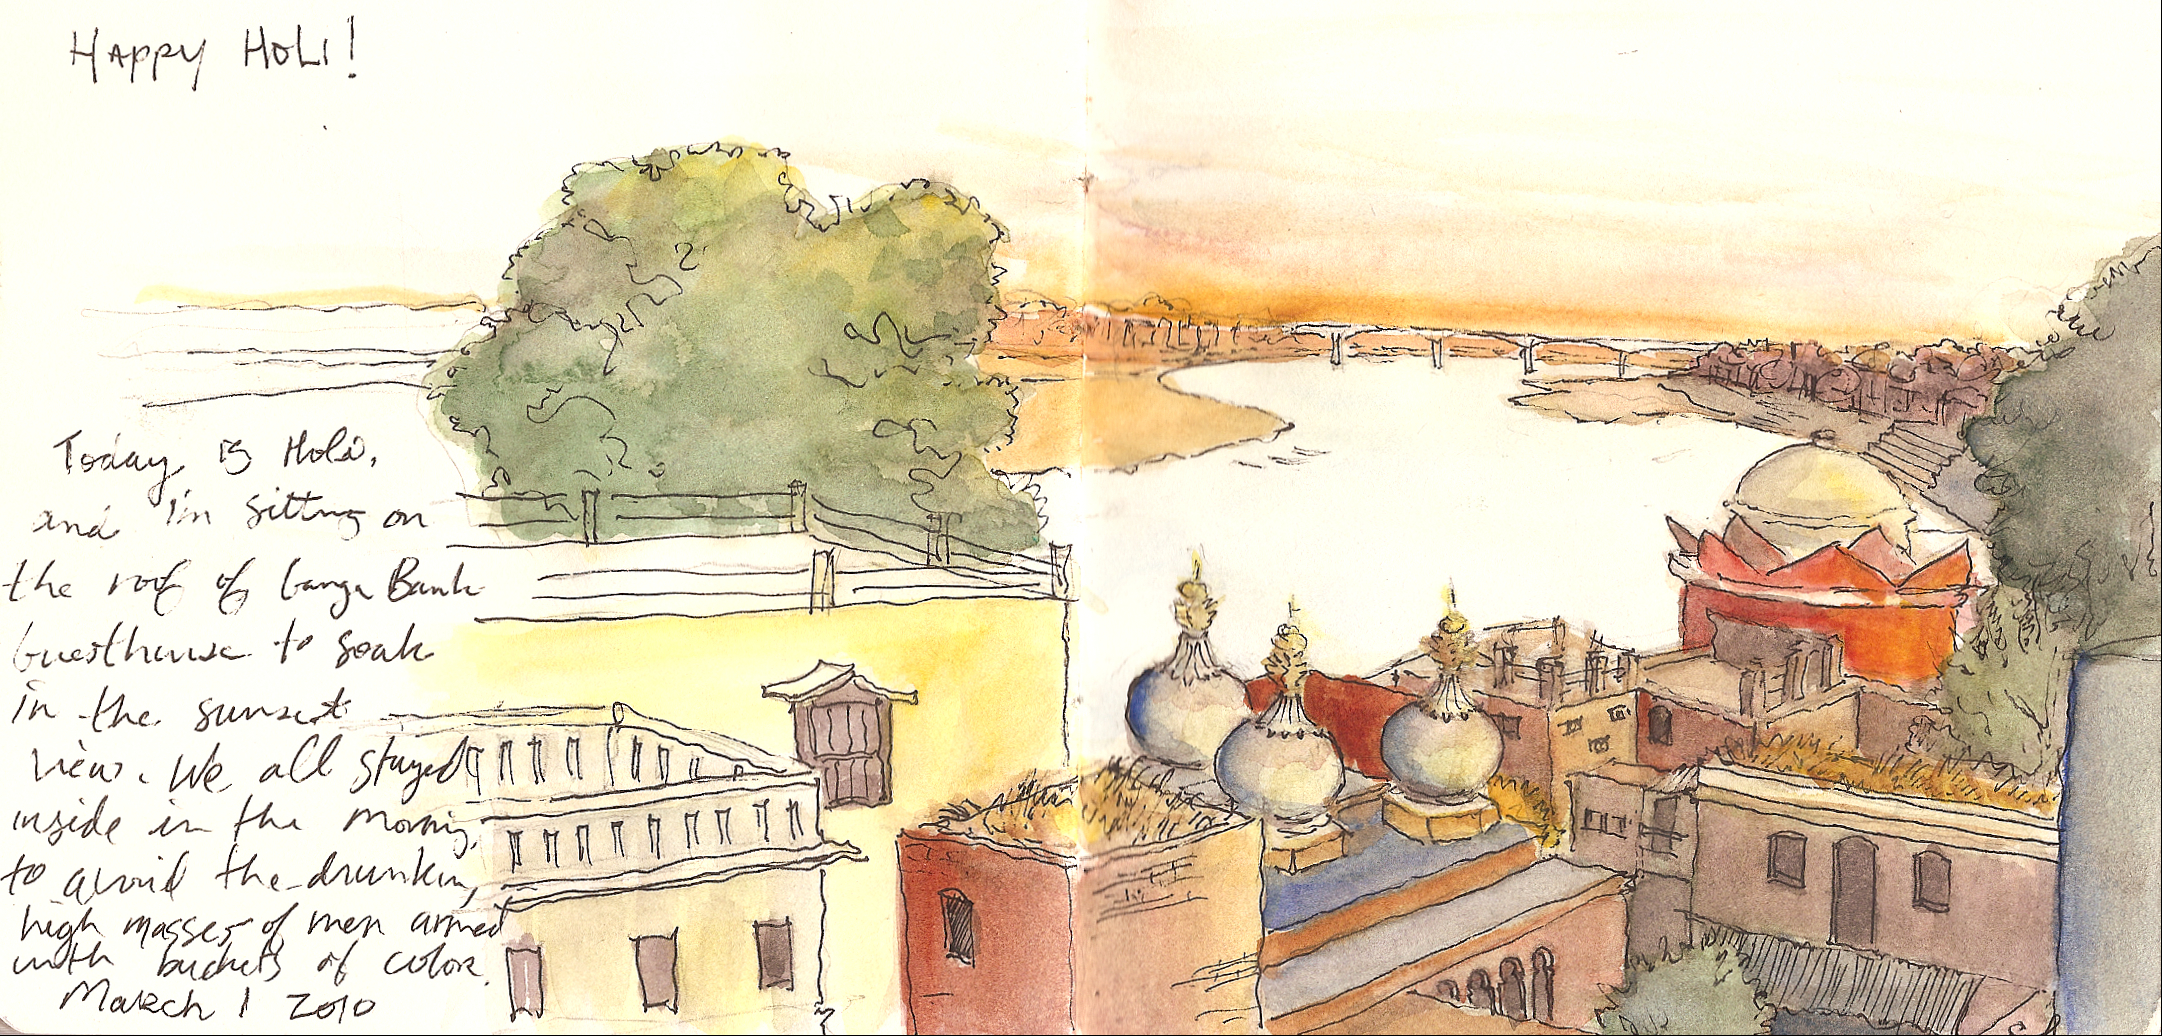 Drawn river ganga Ganga ganga Varanasi Guesthouse Drawn